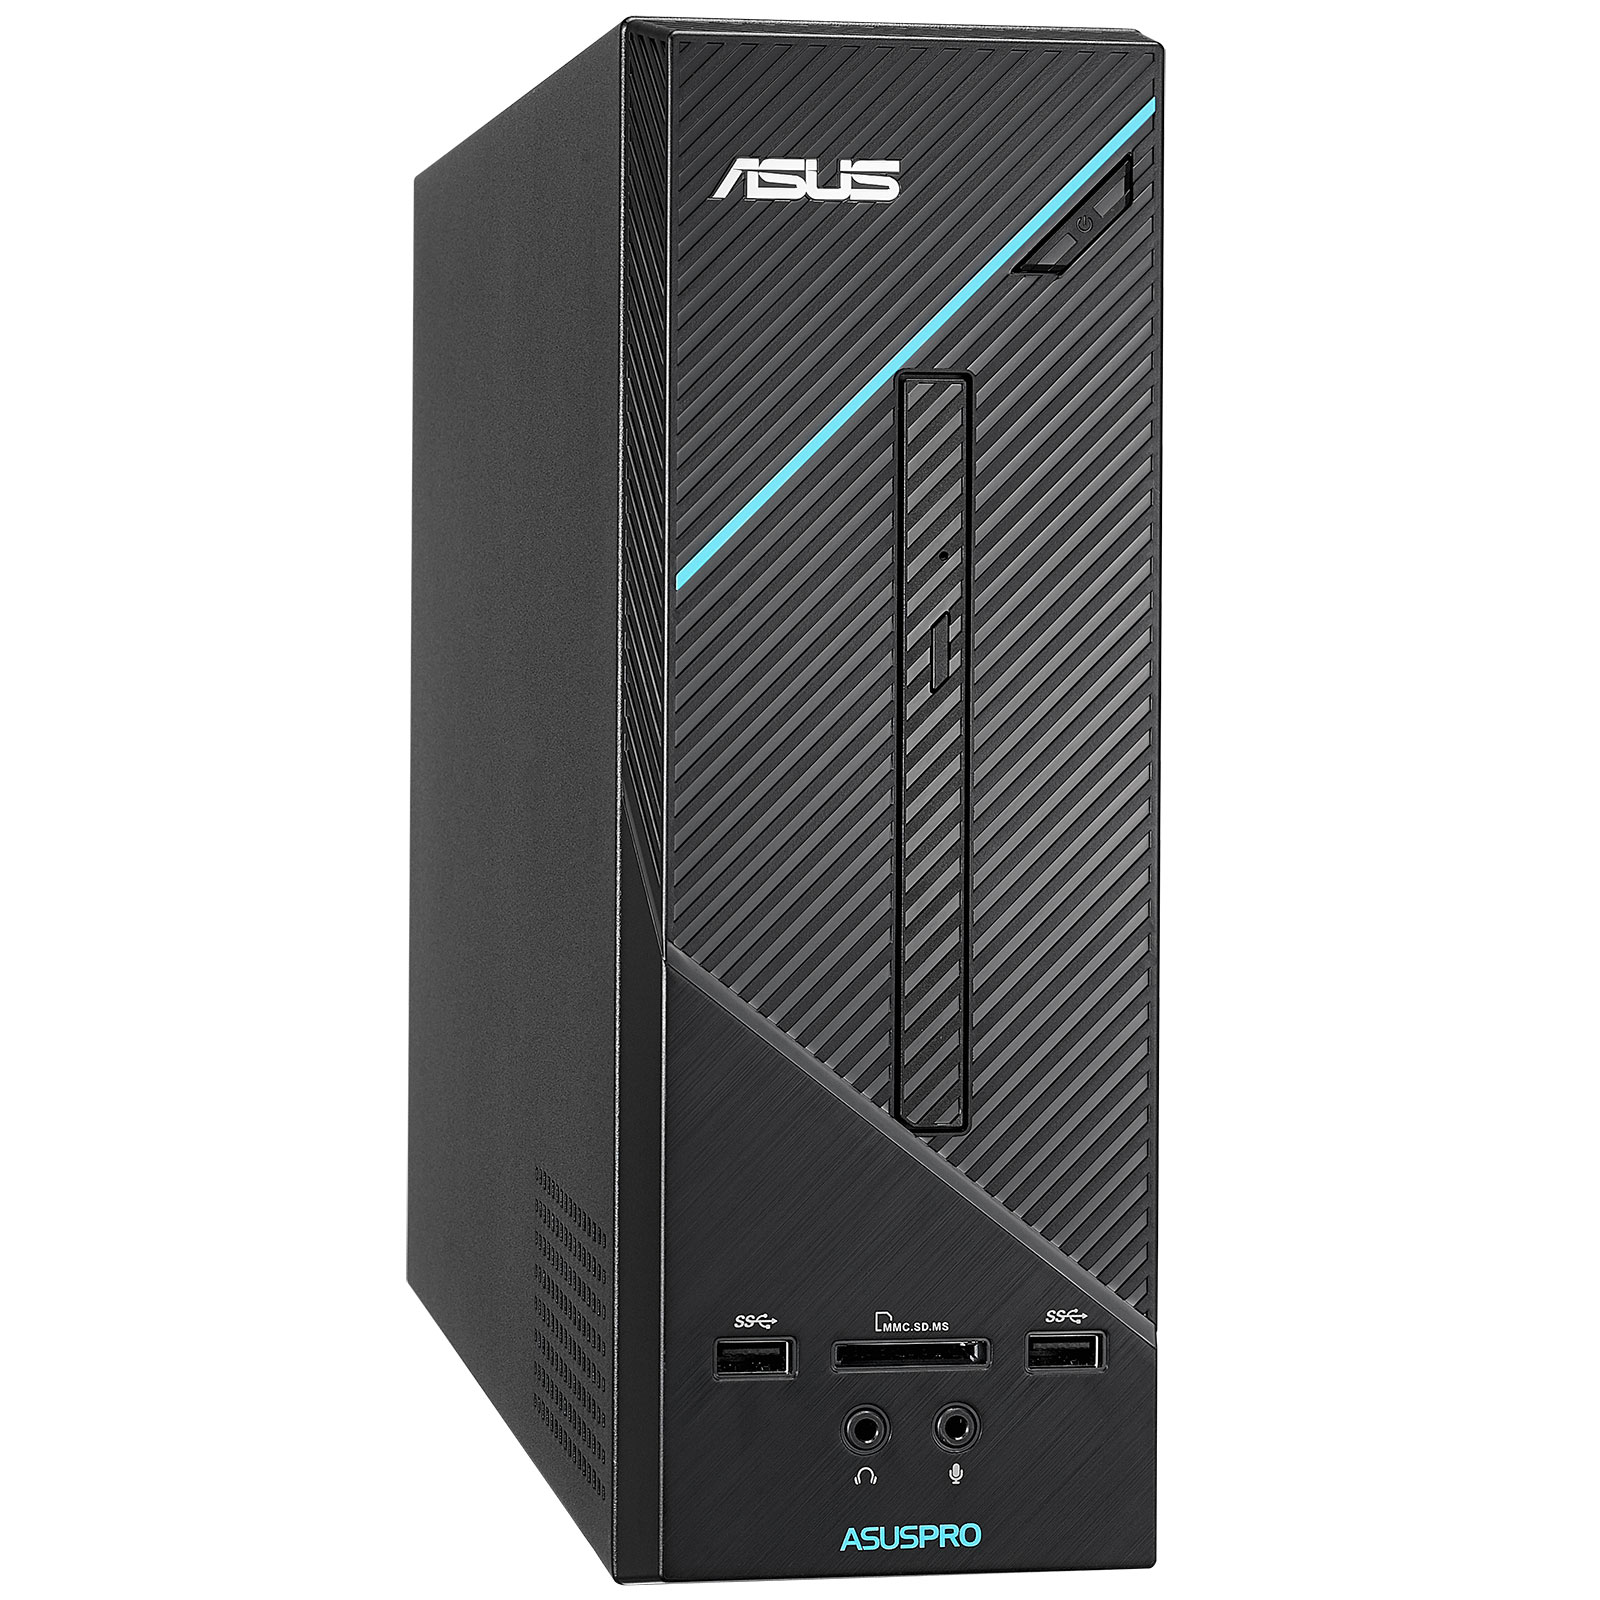 asus d320sf i564000134 pc de bureau asus sur. Black Bedroom Furniture Sets. Home Design Ideas